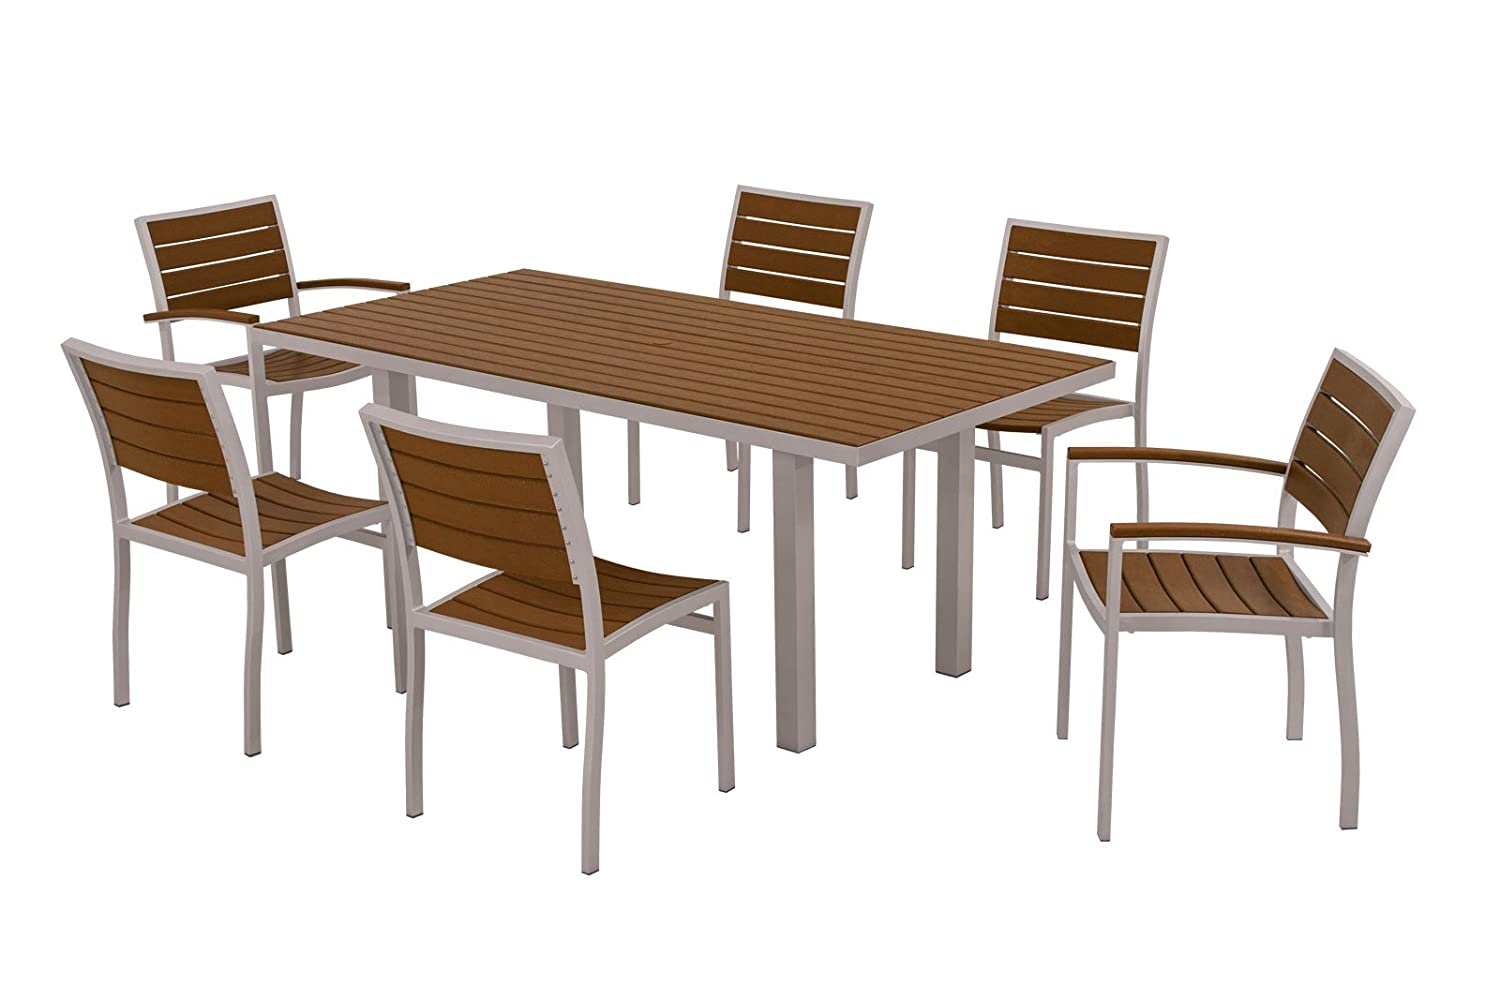 Amazon.com : POLYWOOD PWS117 1 11TE 7 Piece Dining Set, Euro, Textured  Silver/Teak : Outdoor And Patio Furniture Sets : Garden U0026 Outdoor